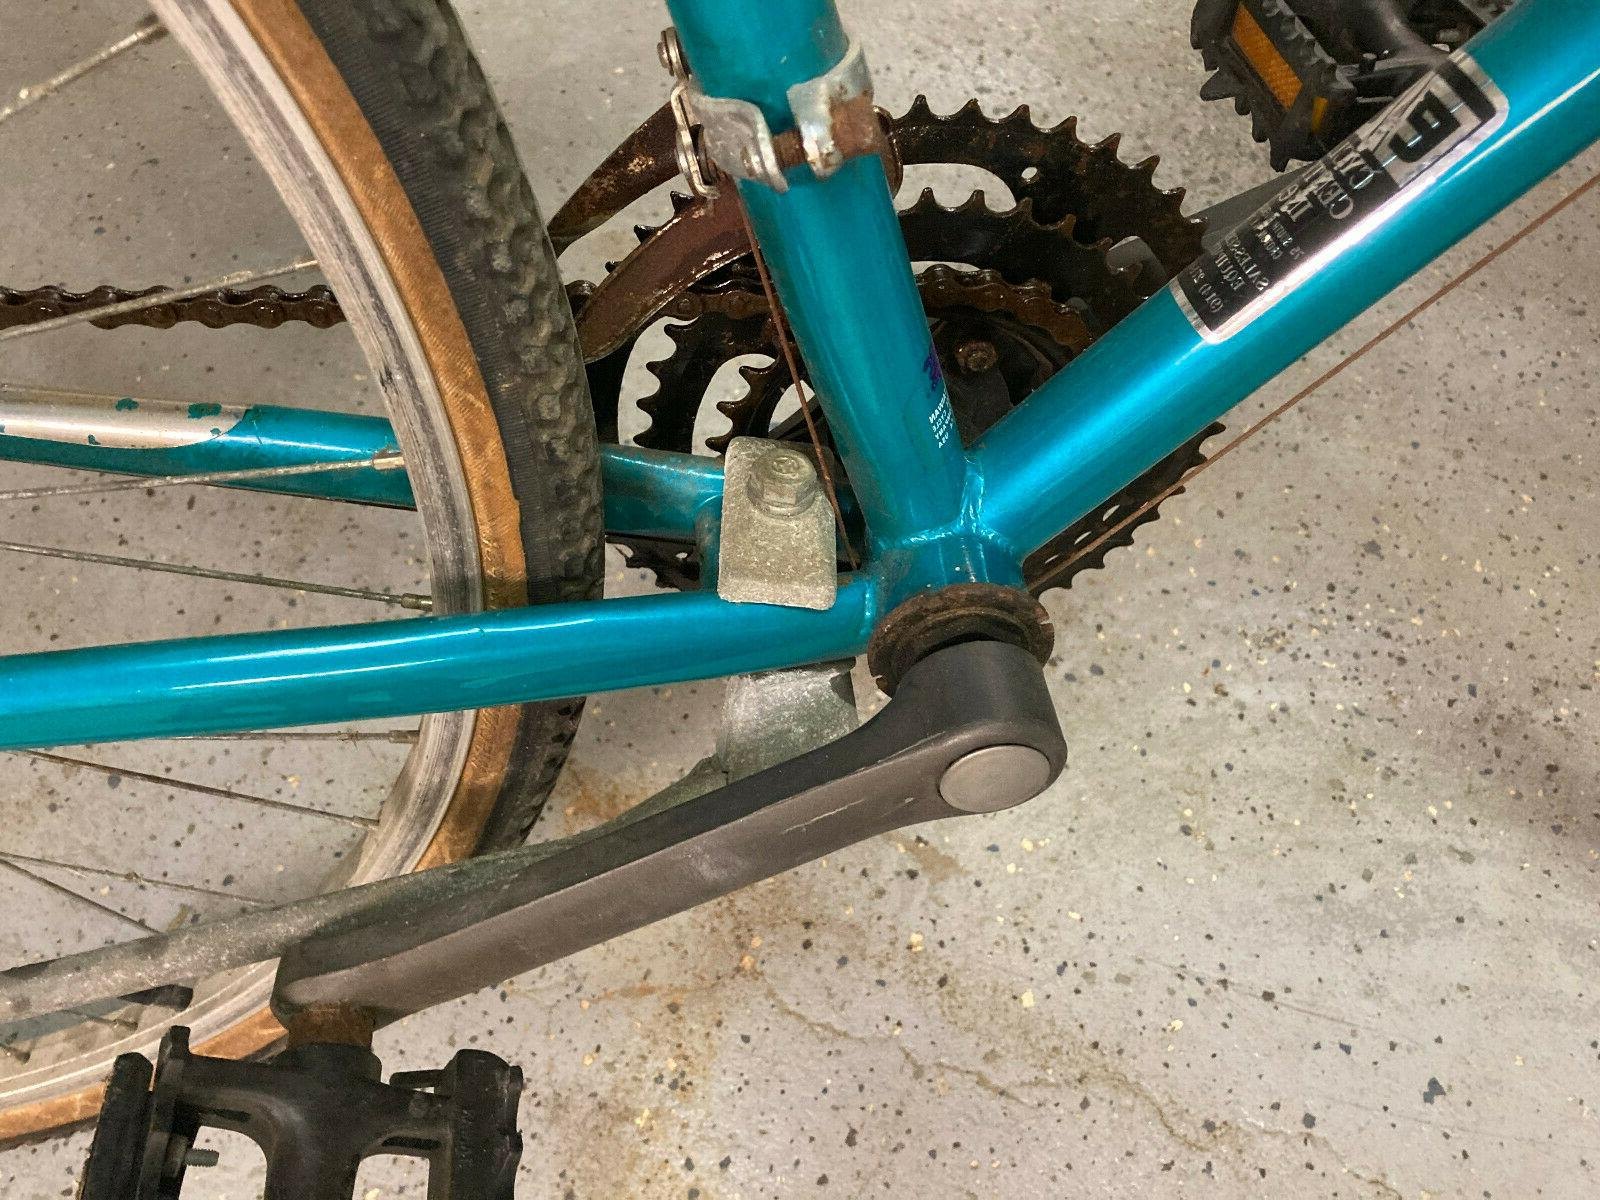 Mongoose with 700x38 tires, speeds